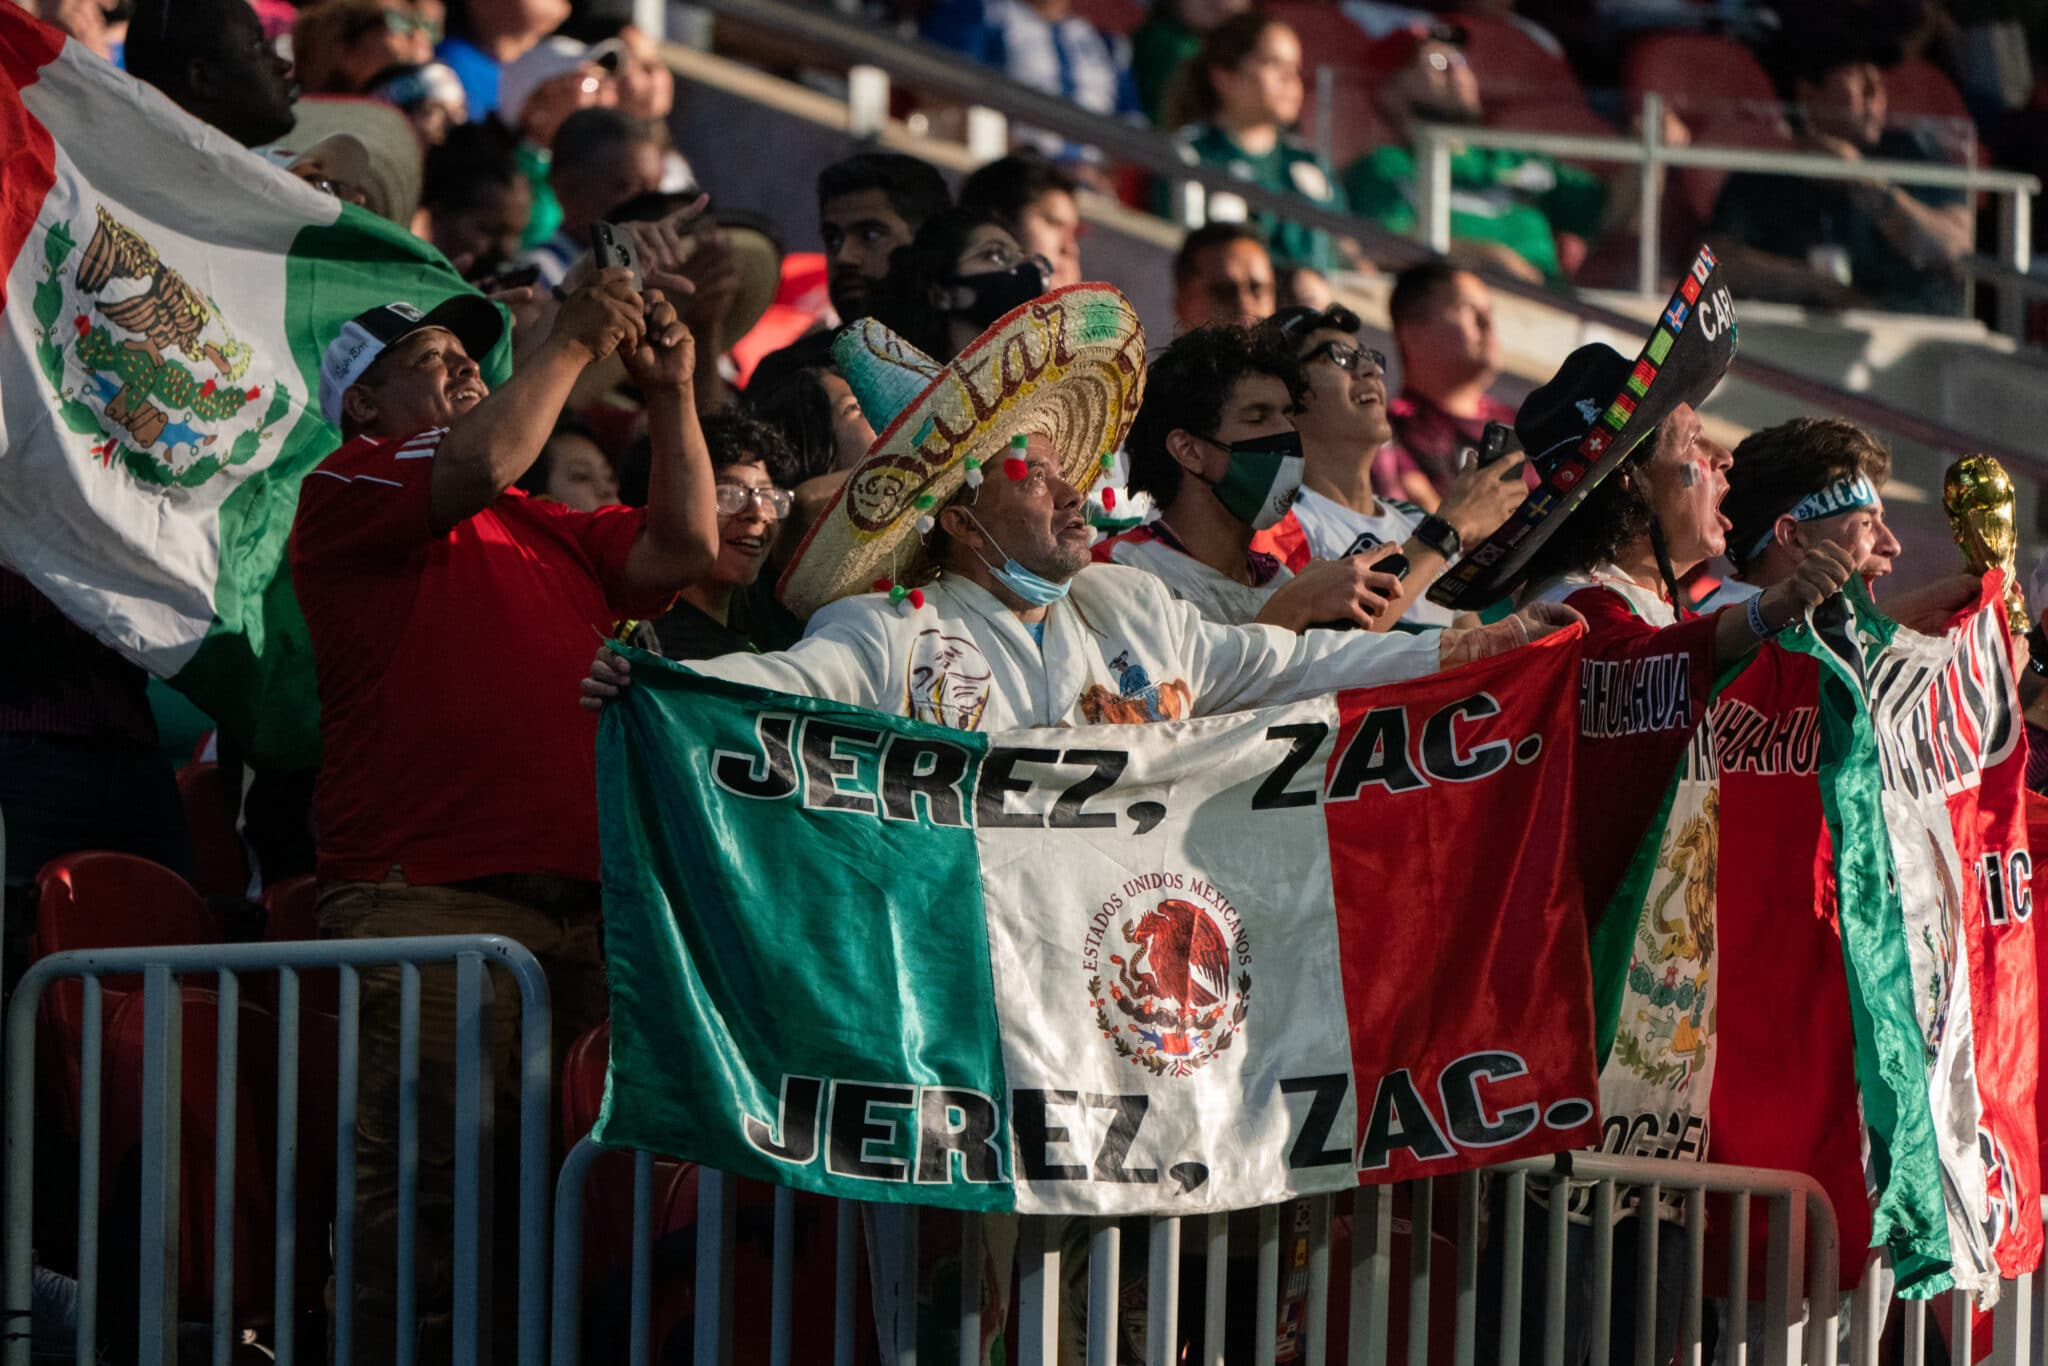 Mexico will play World Cup games in an empty stadium due to fans' homophobic chanting